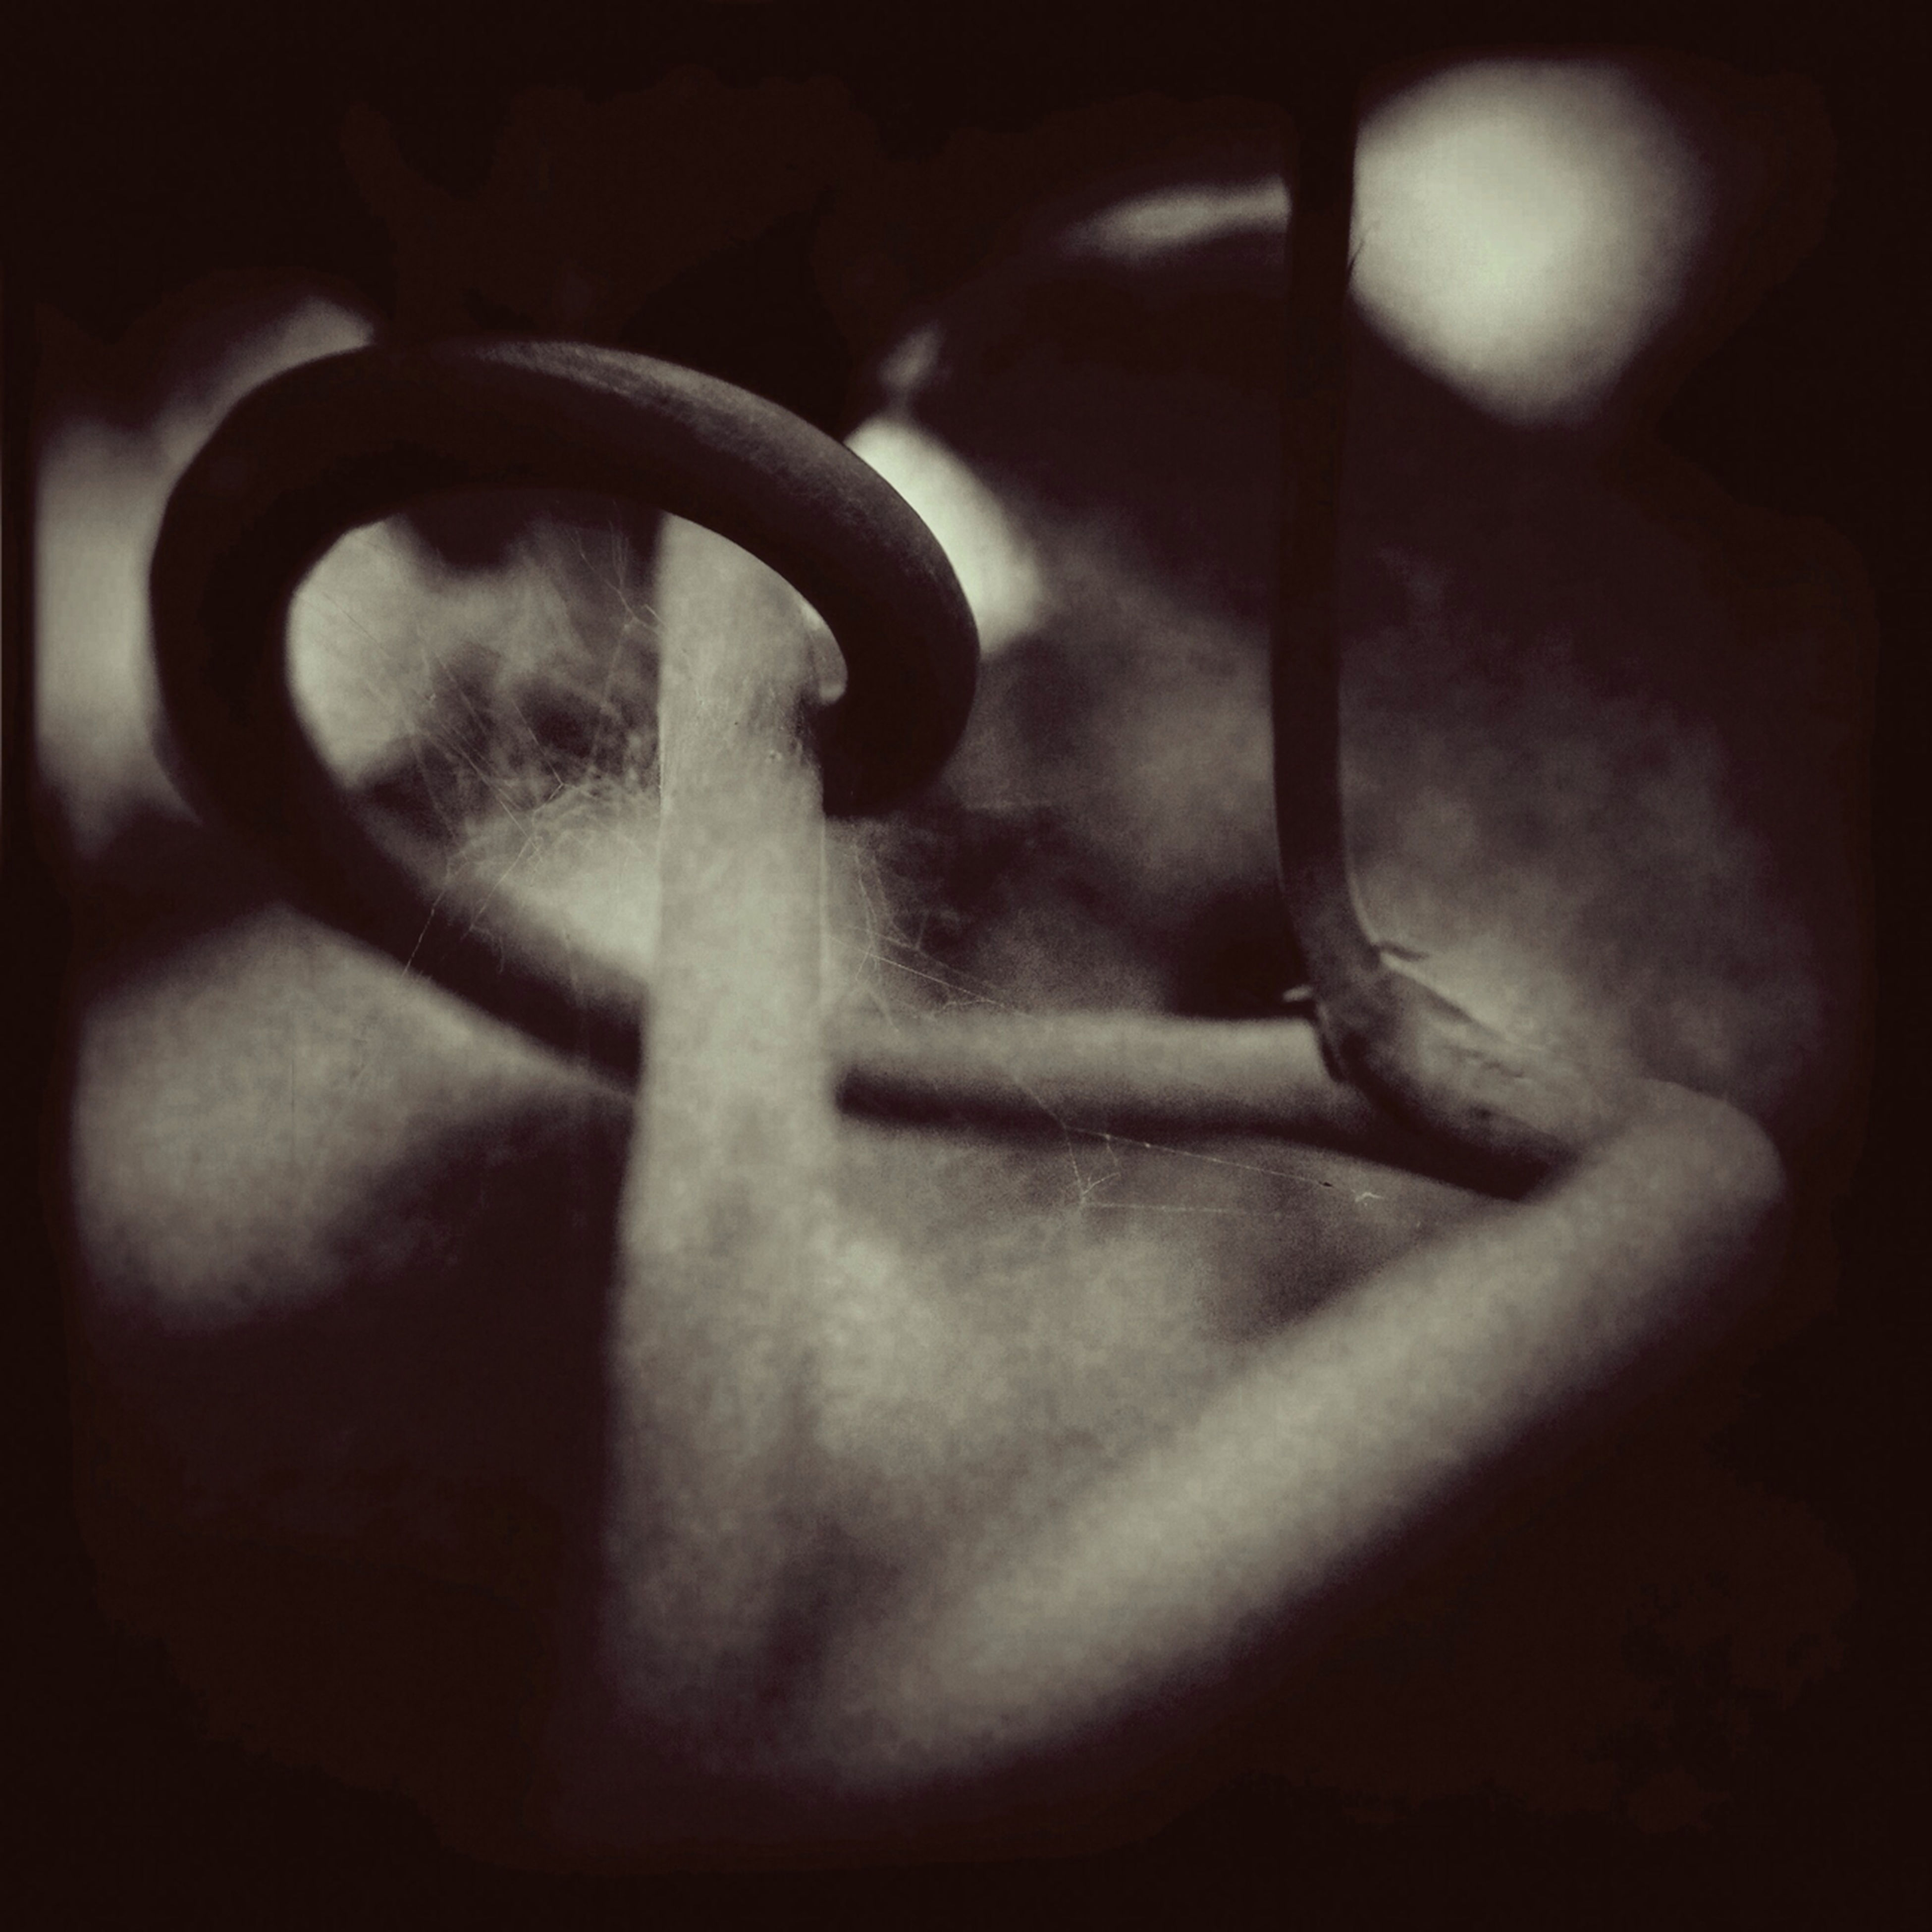 indoors, close-up, metal, single object, shadow, no people, dark, focus on foreground, still life, selective focus, handle, sunlight, metallic, day, protection, vignette, wall - building feature, home interior, shape, chain